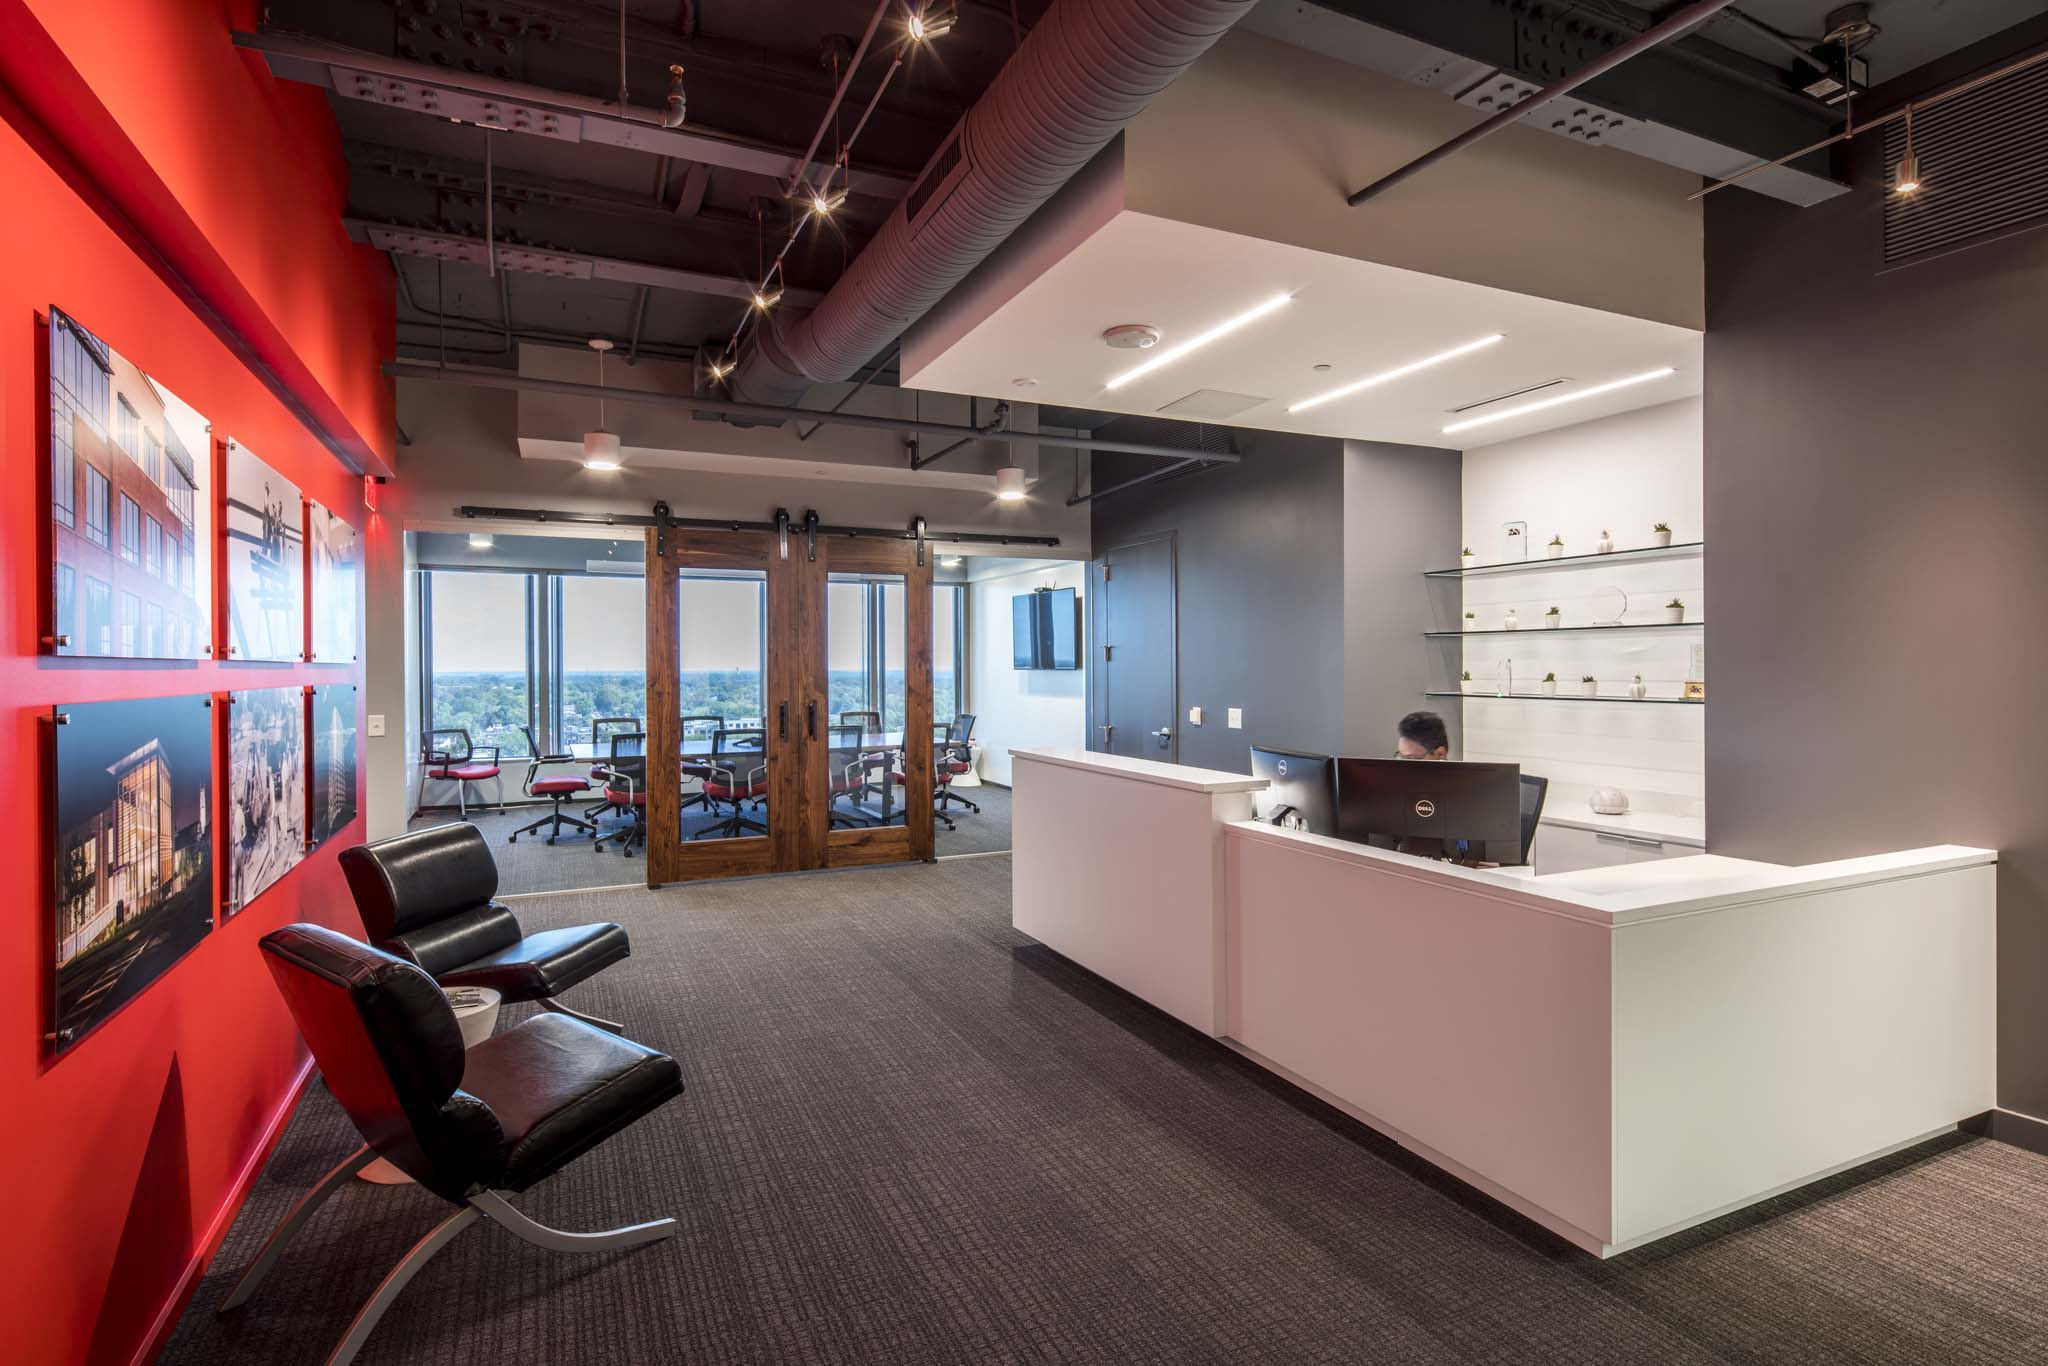 GILBANE - RALEIGH, NC5,000 SF• Global integrated construction and facility management services firm.